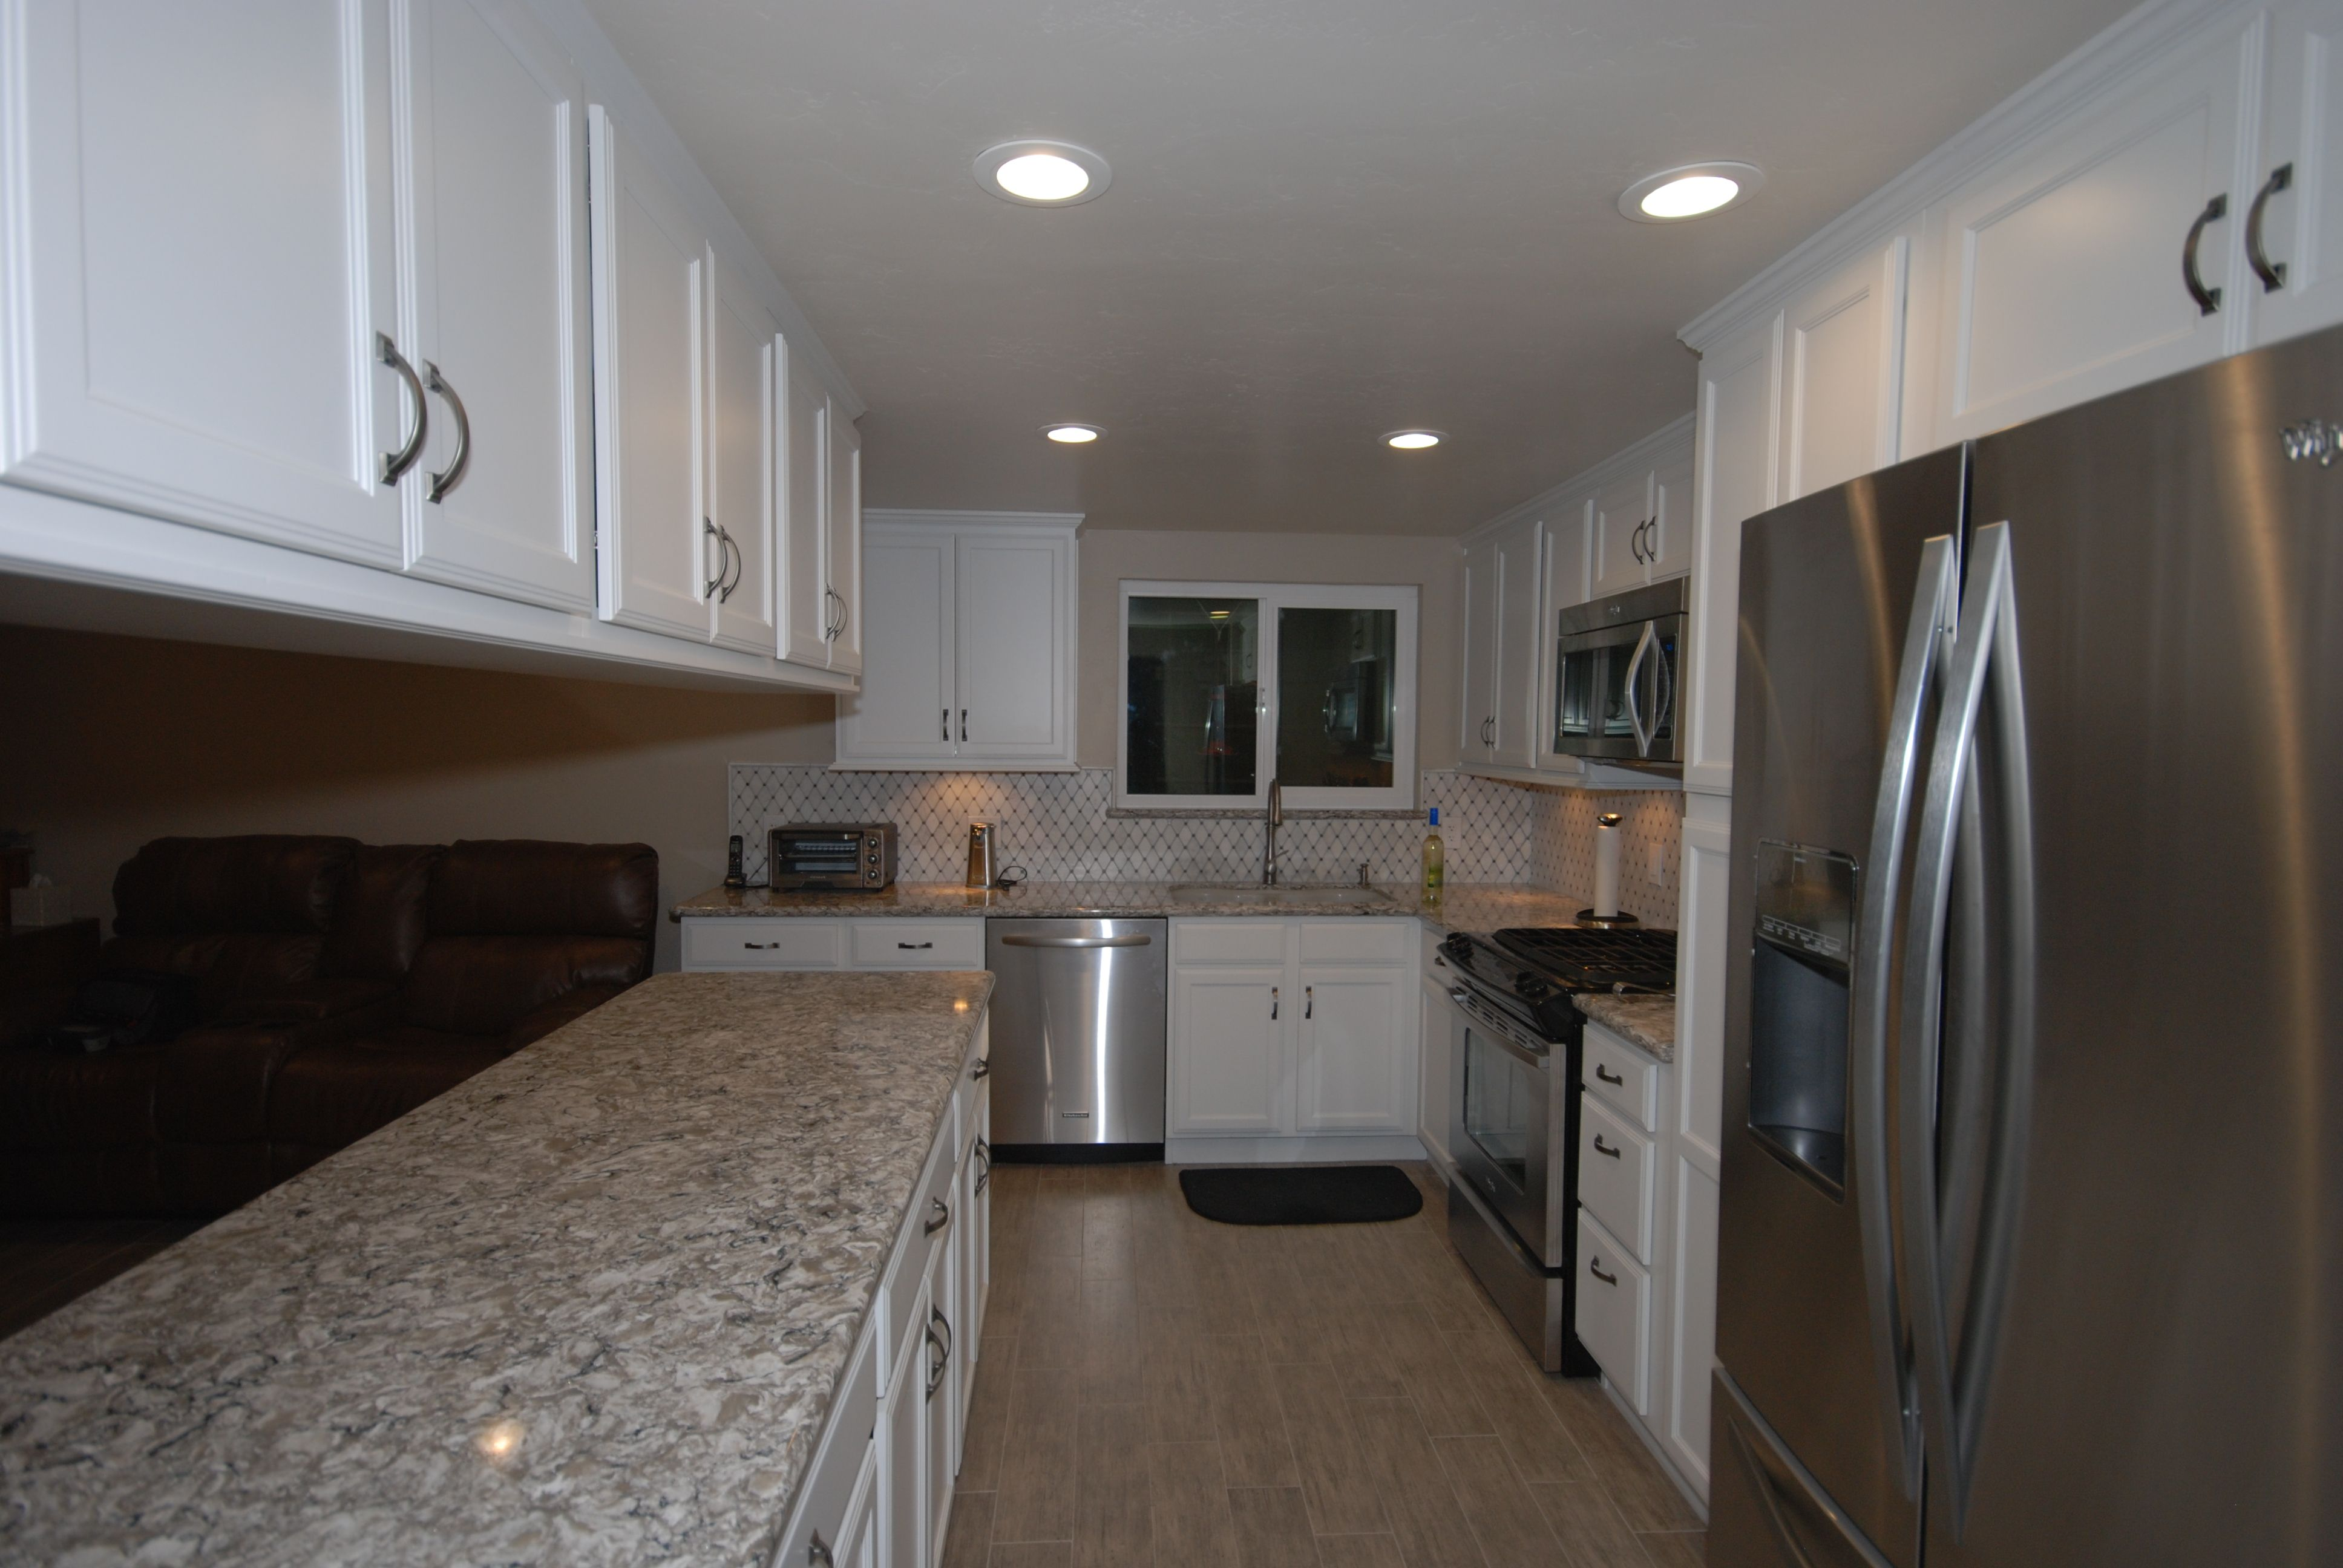 Bakersfield Kitchen And Bathroom Cabinets And Design Blue River Cabinetry And Constru White Kitchen Remodeling Kitchen Cabinets In Bathroom Kitchen Renovation